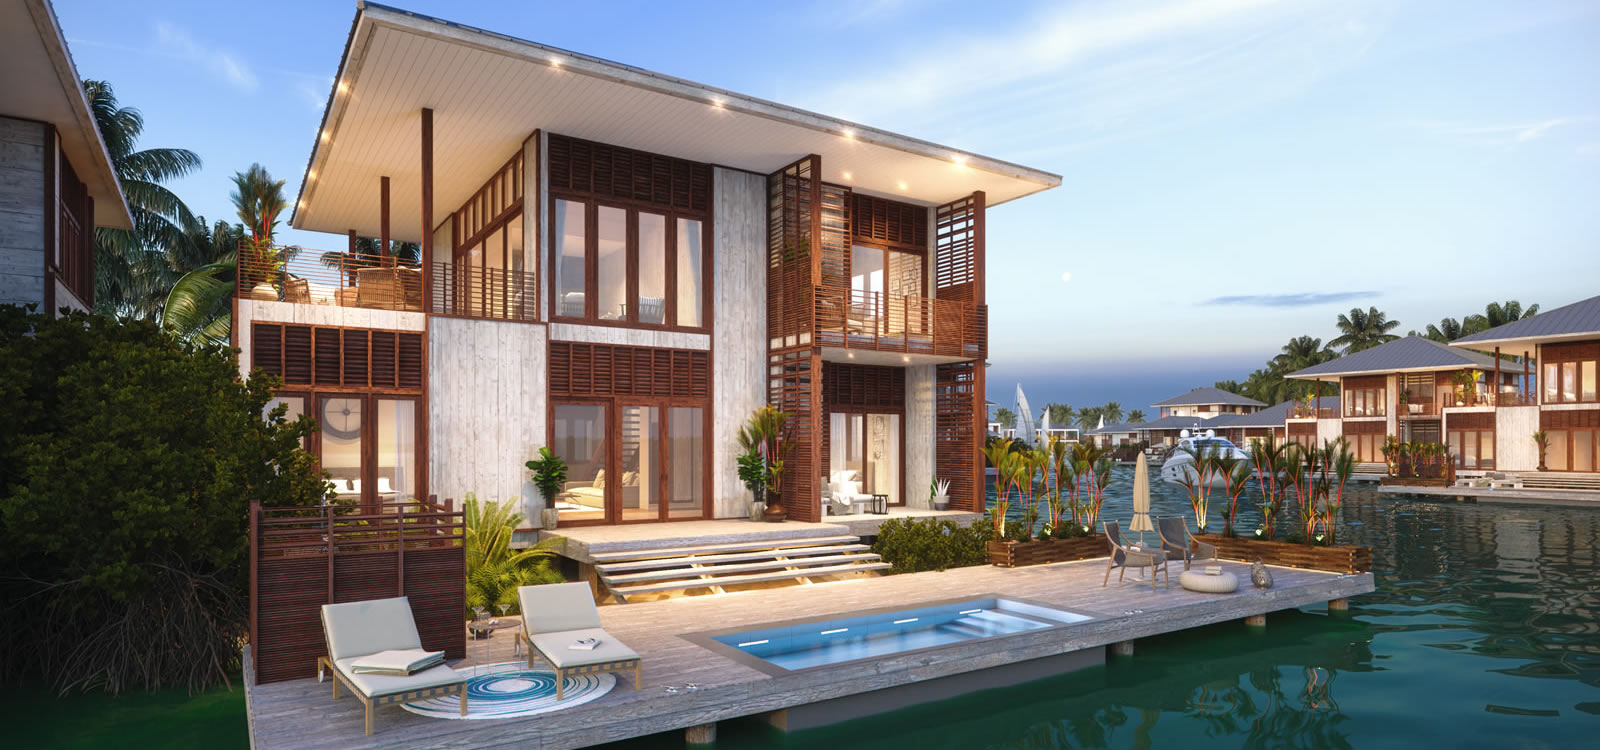 4 Bedroom Luxury Lagoon Houses For Sale Placencia Belize